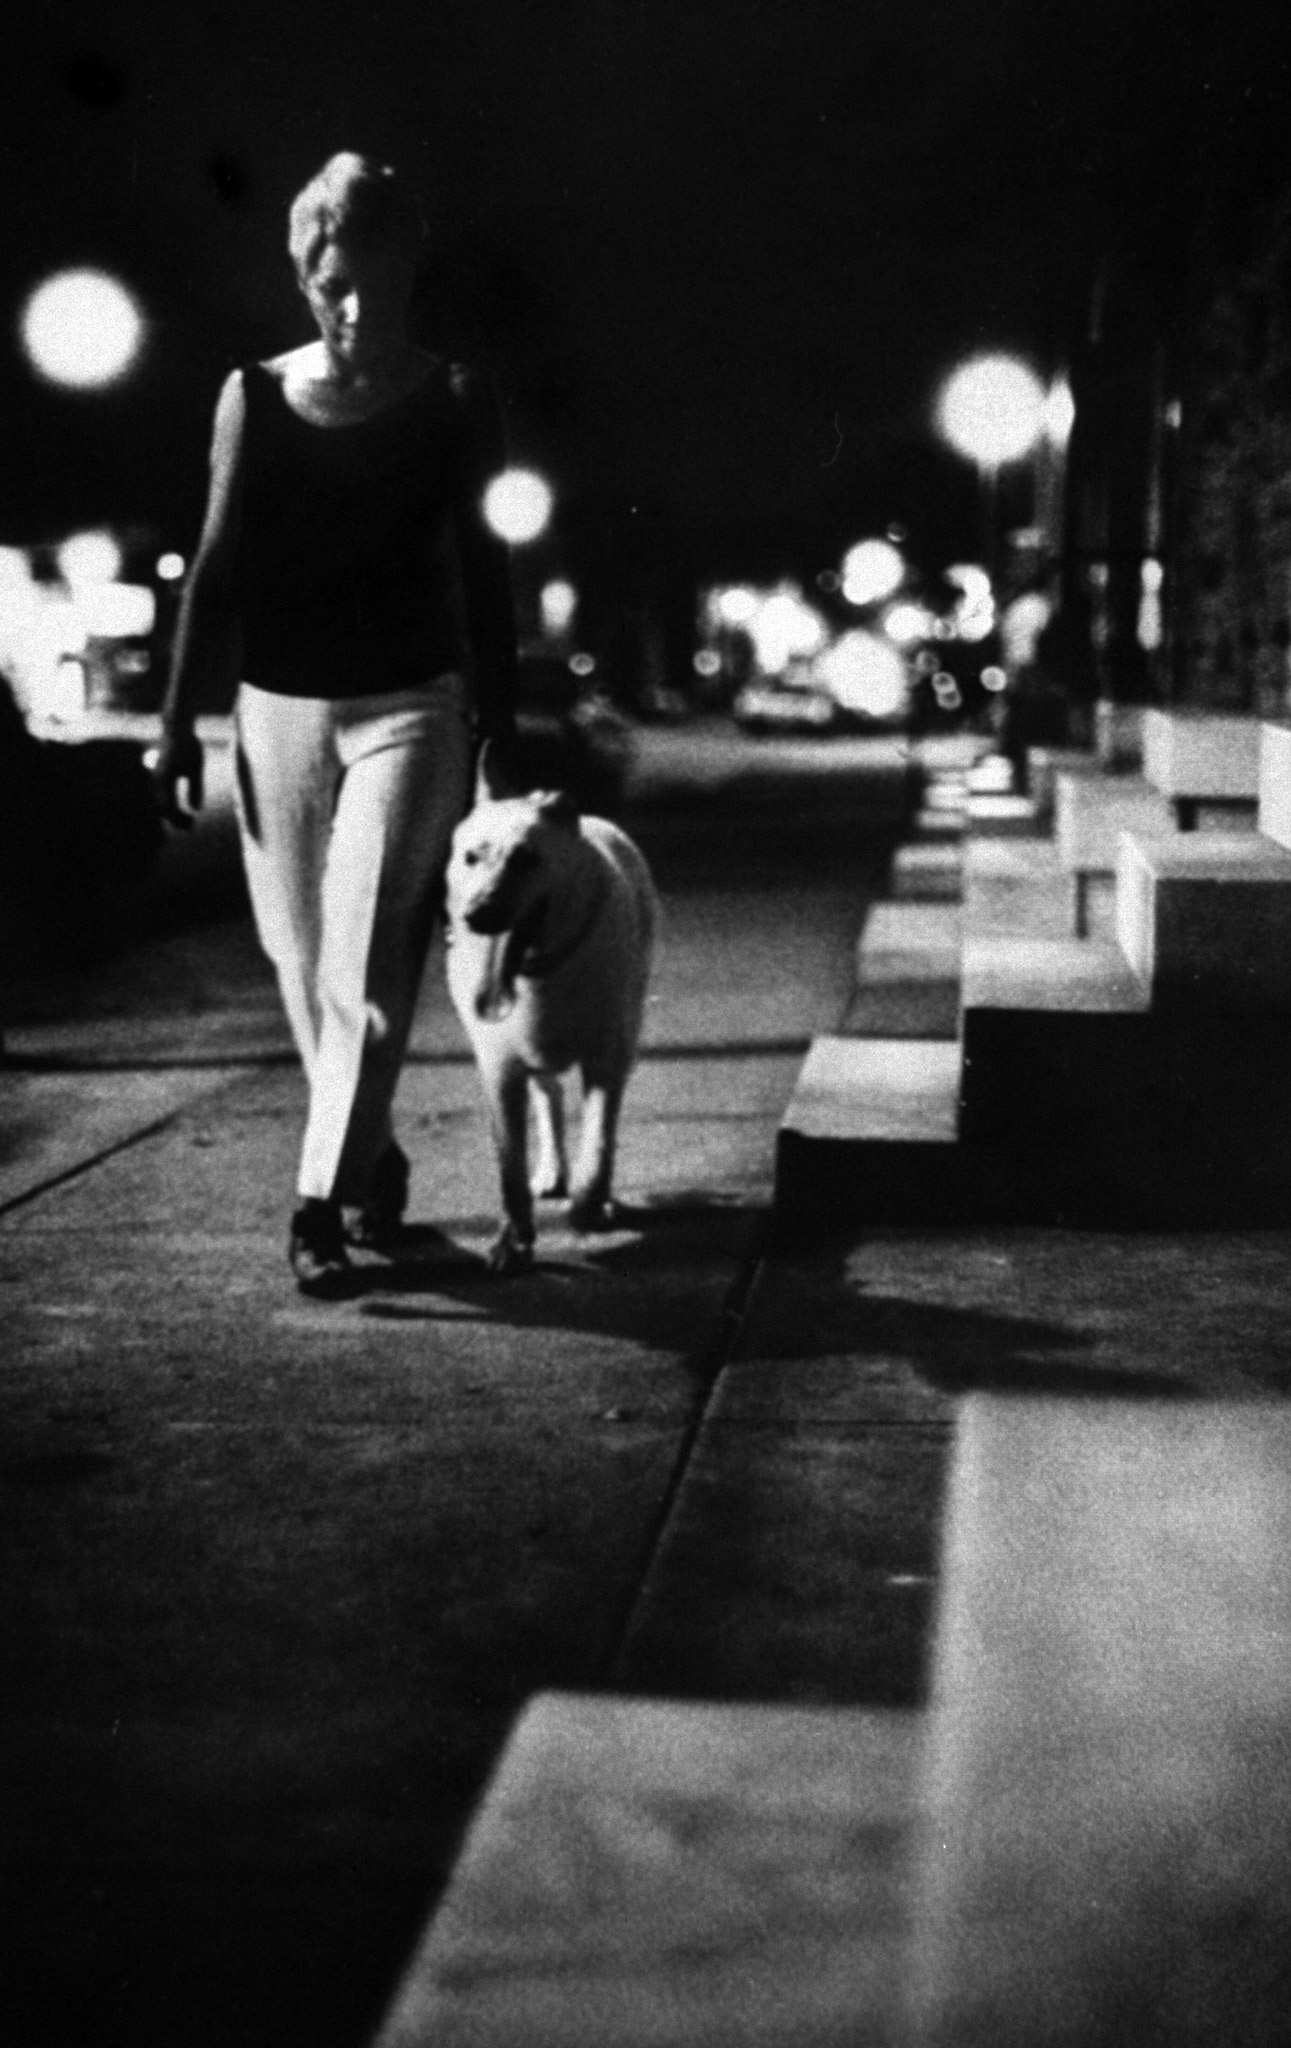 <b>Caption from LIFE.</b> Past the darkened marble stoops that are Baltimore's hallmark, Mrs. Barbara Ringgold walks home after working late—escorted by Tiny, her German shepherd.